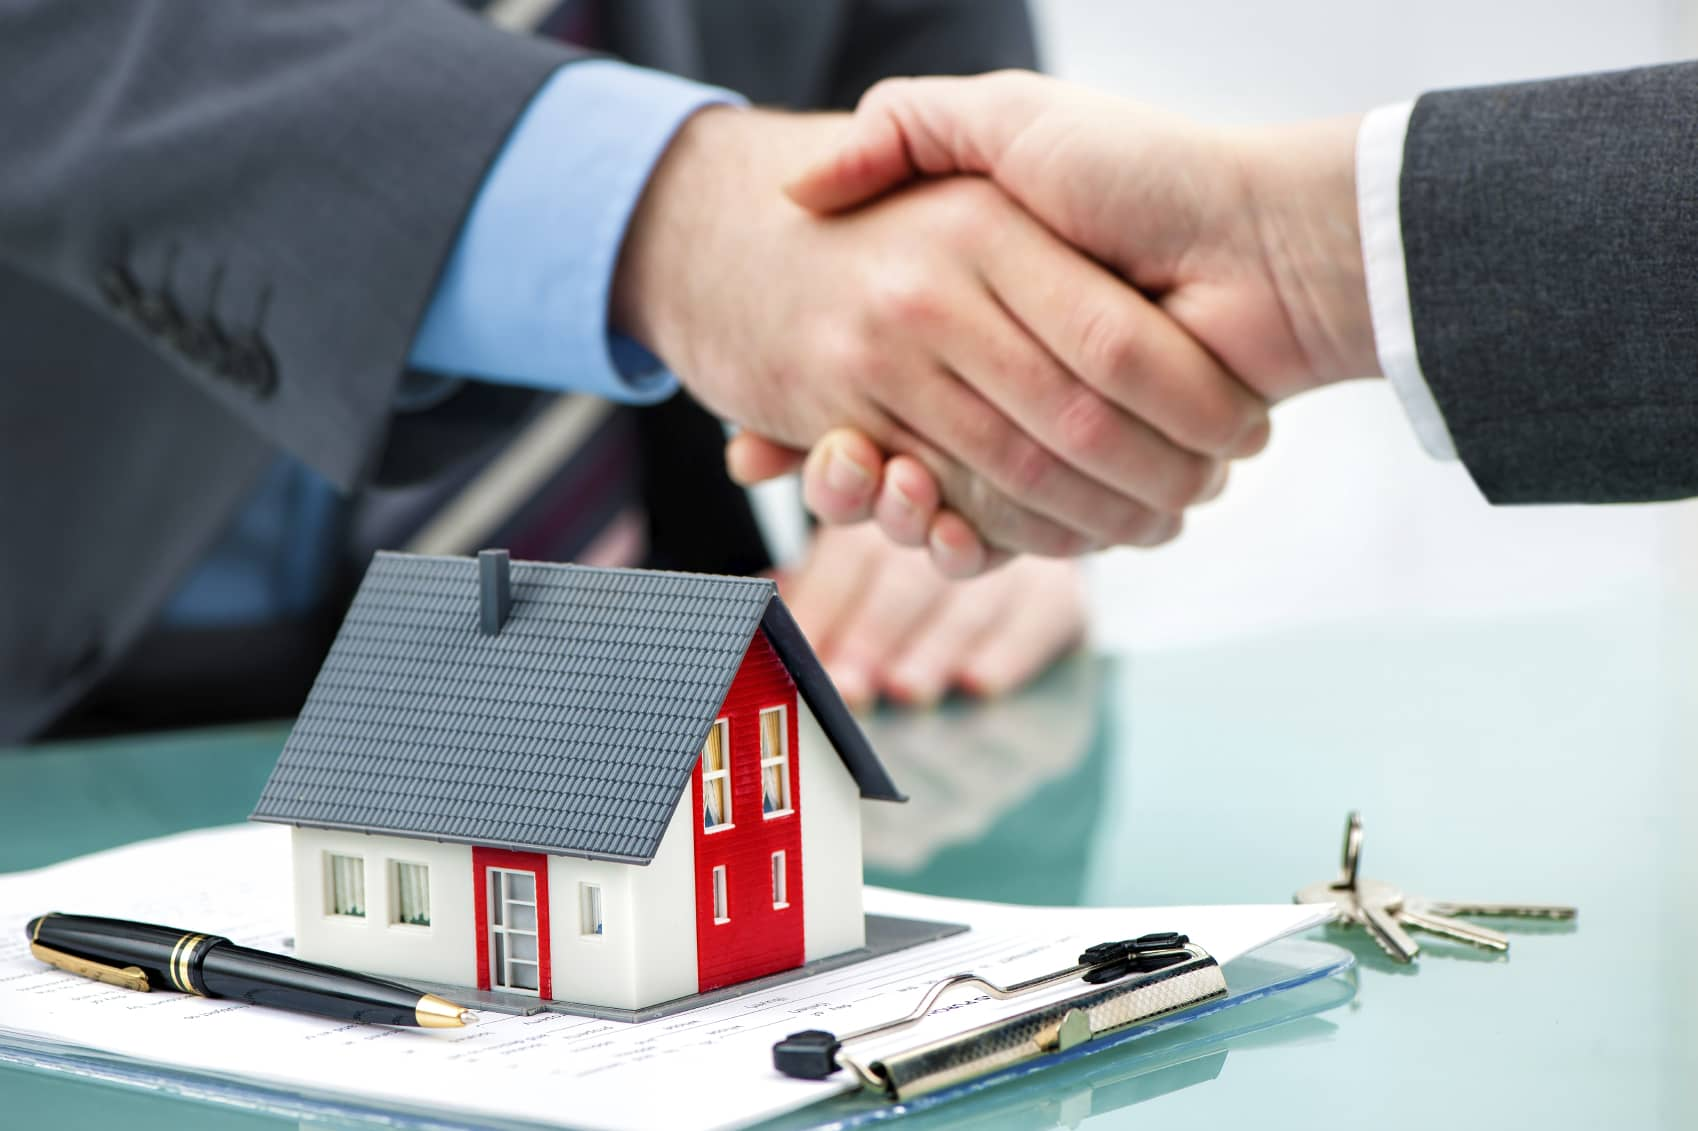 Are You In Need Of Monetary Help For Business Establishment?